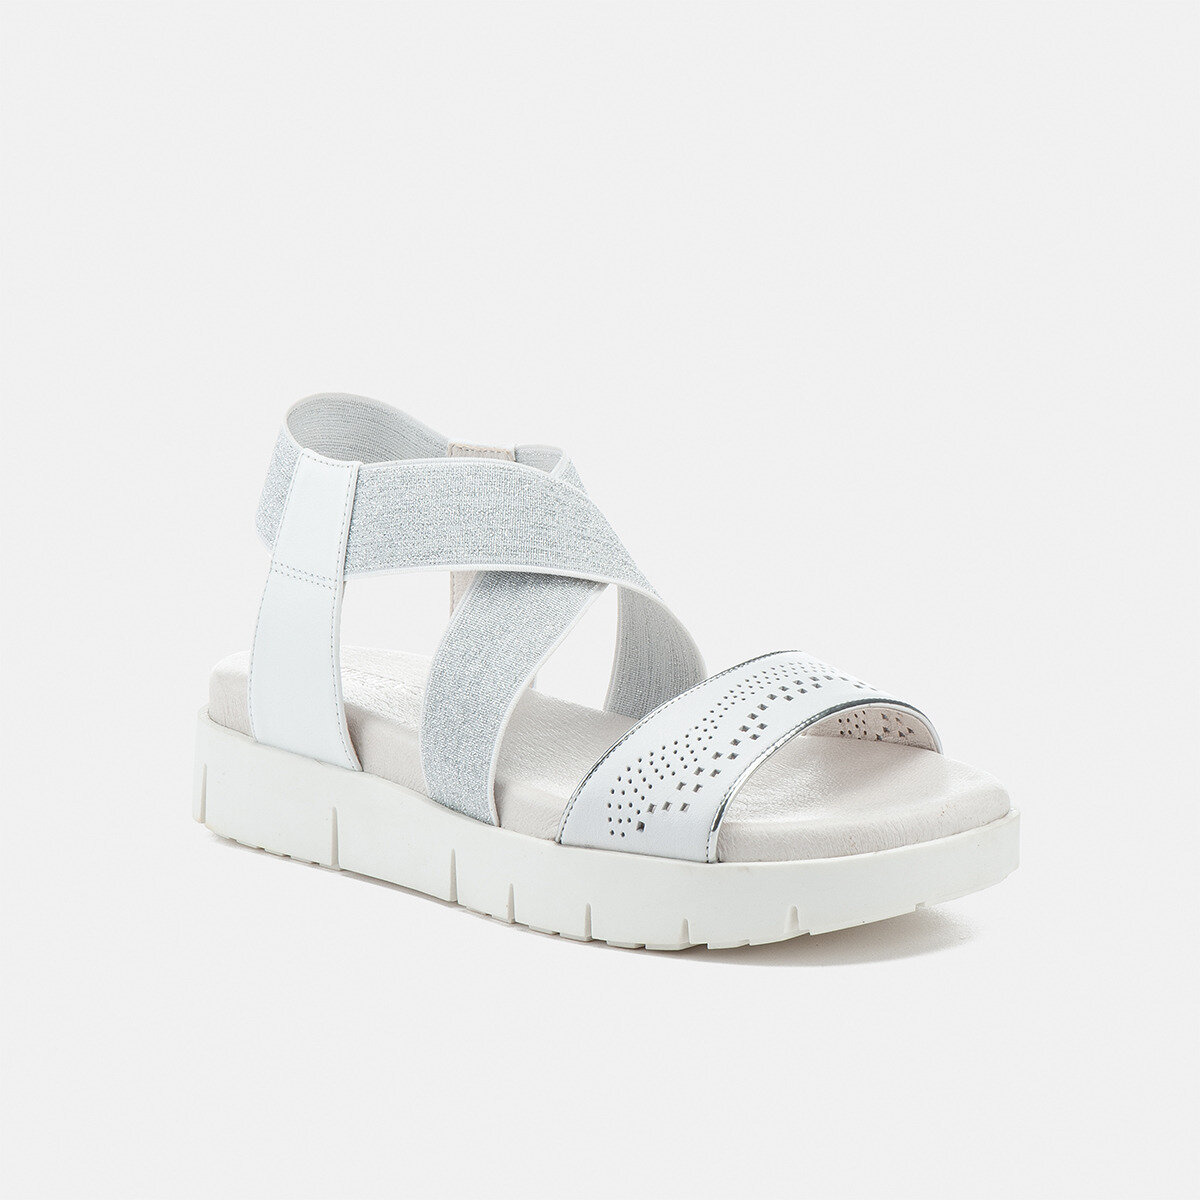 EVETTE WHITE Woman Sandals